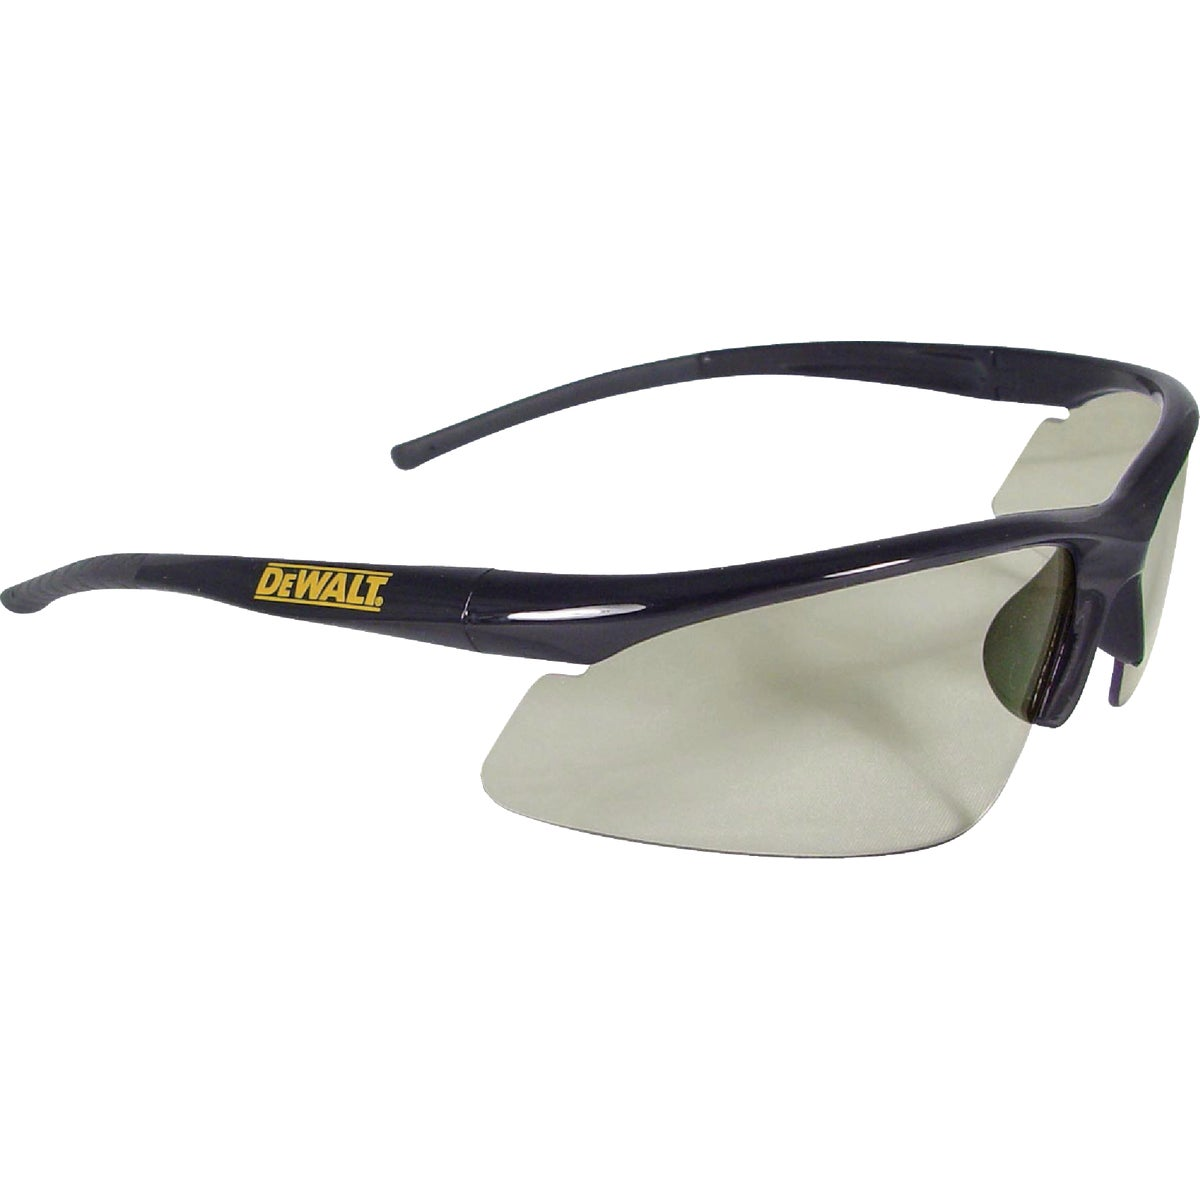 ICE SAFETY GLASSES - DPG51-9C by Radians